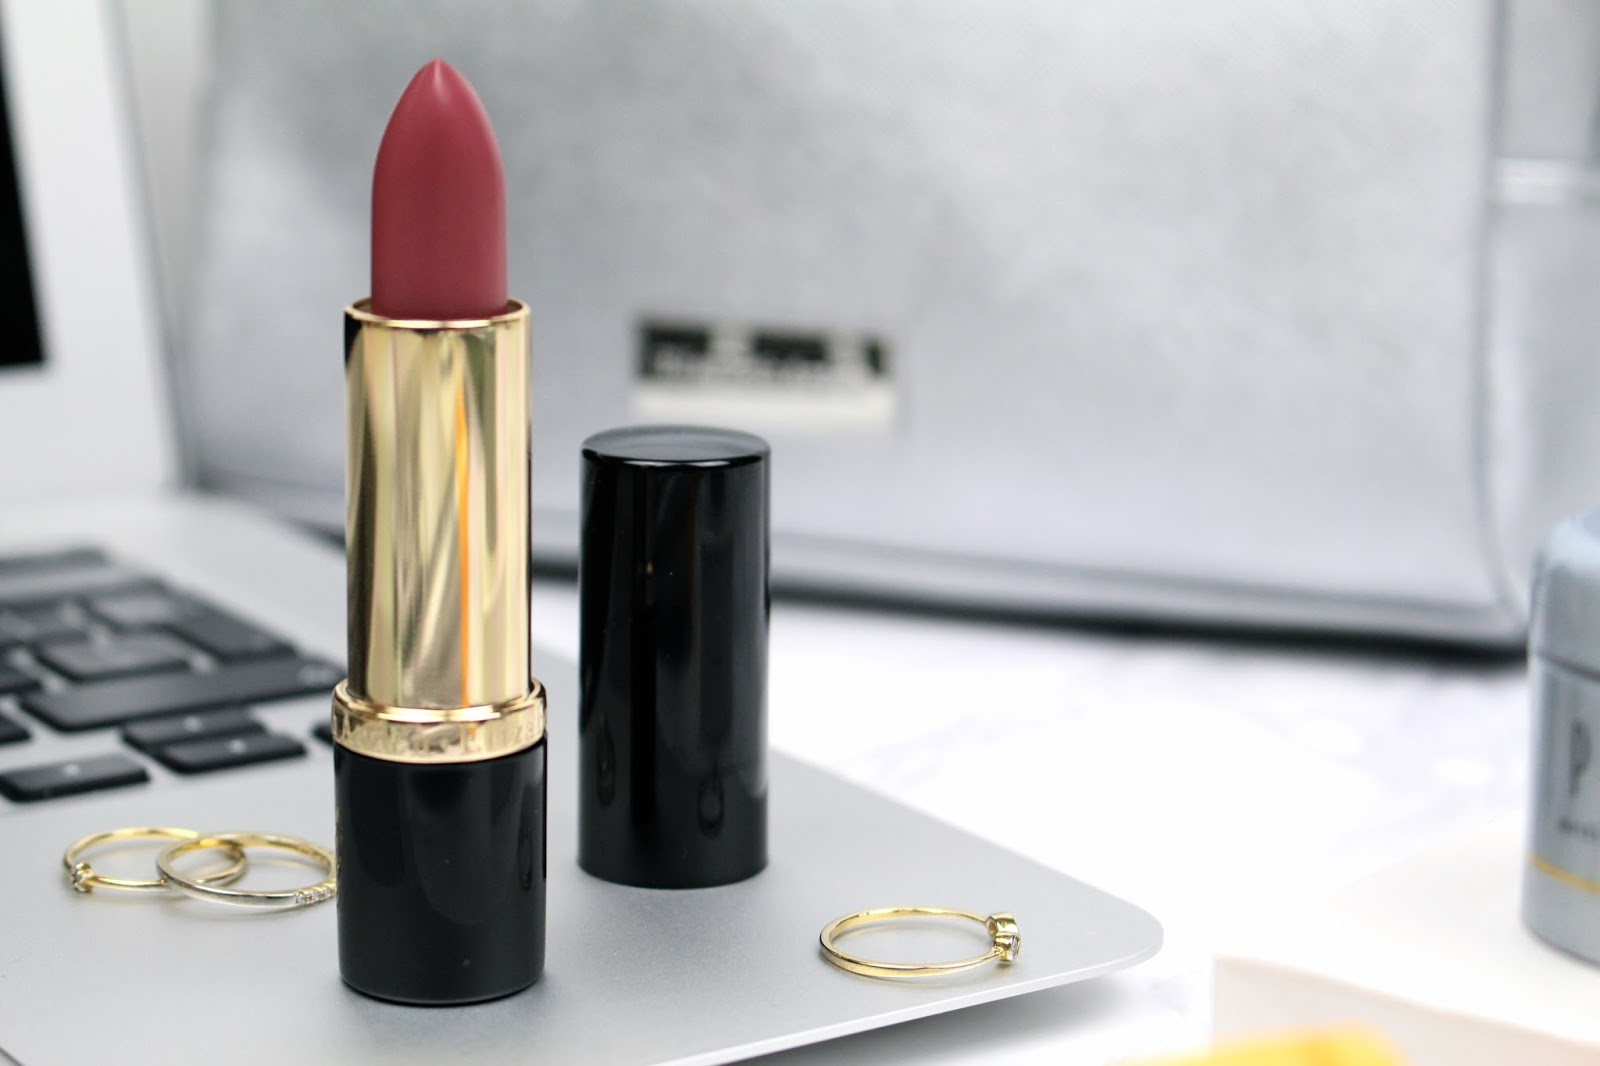 Elizabeth Arden Ceramide Ultra Lipstick Rose review